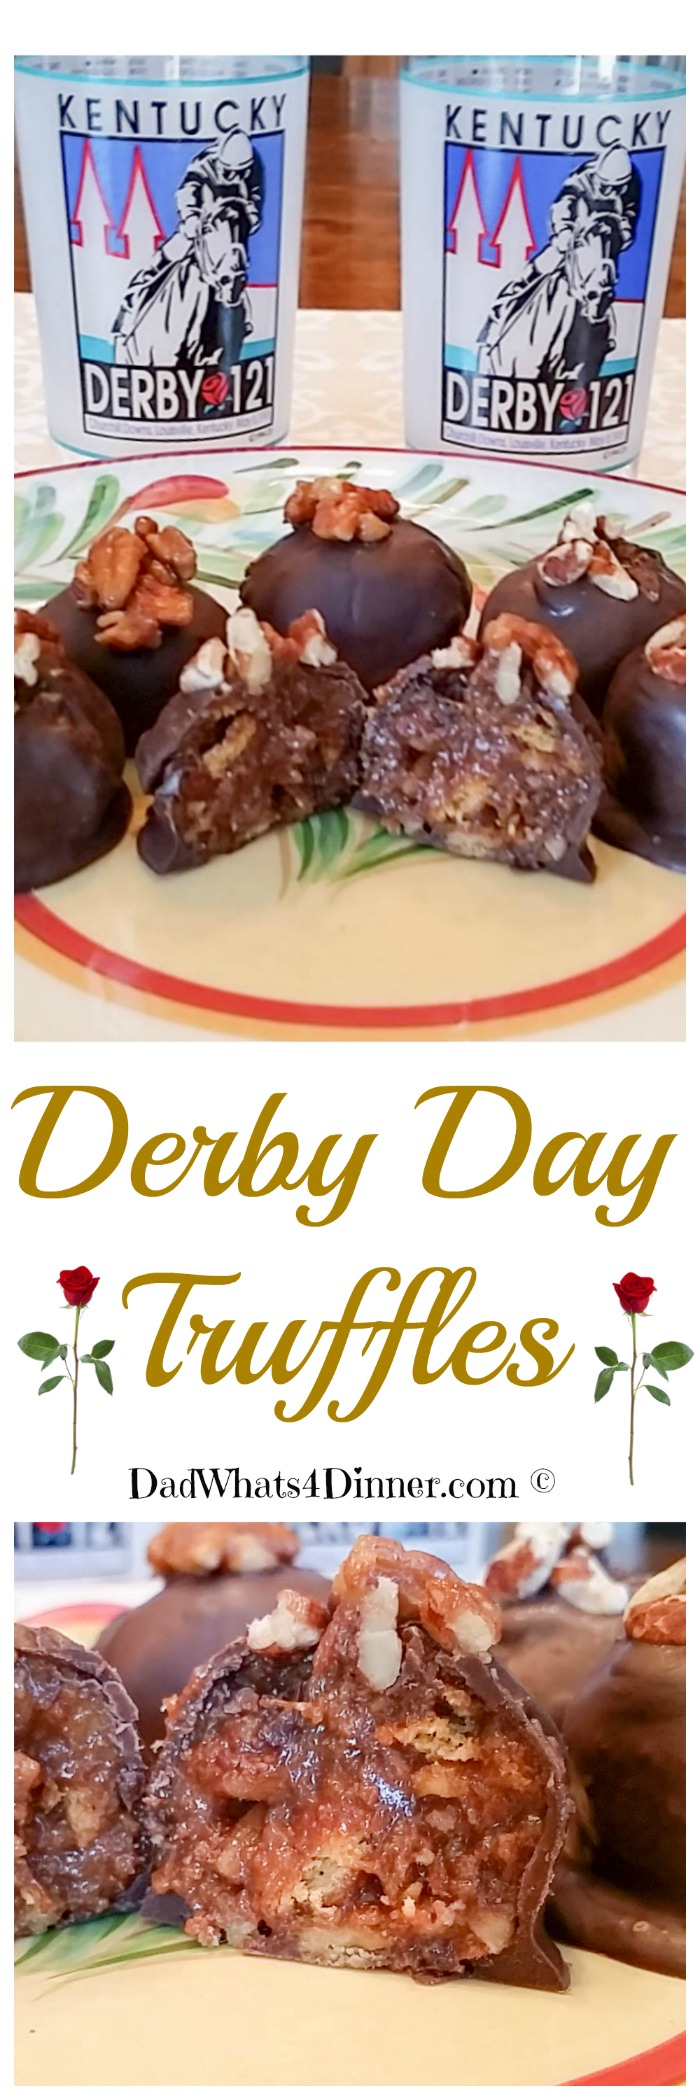 Derby Day Truffles are very decadent, elegant and exquisite to look at. You will be the hit of your Kentucky Derby Party, I guarantee it!